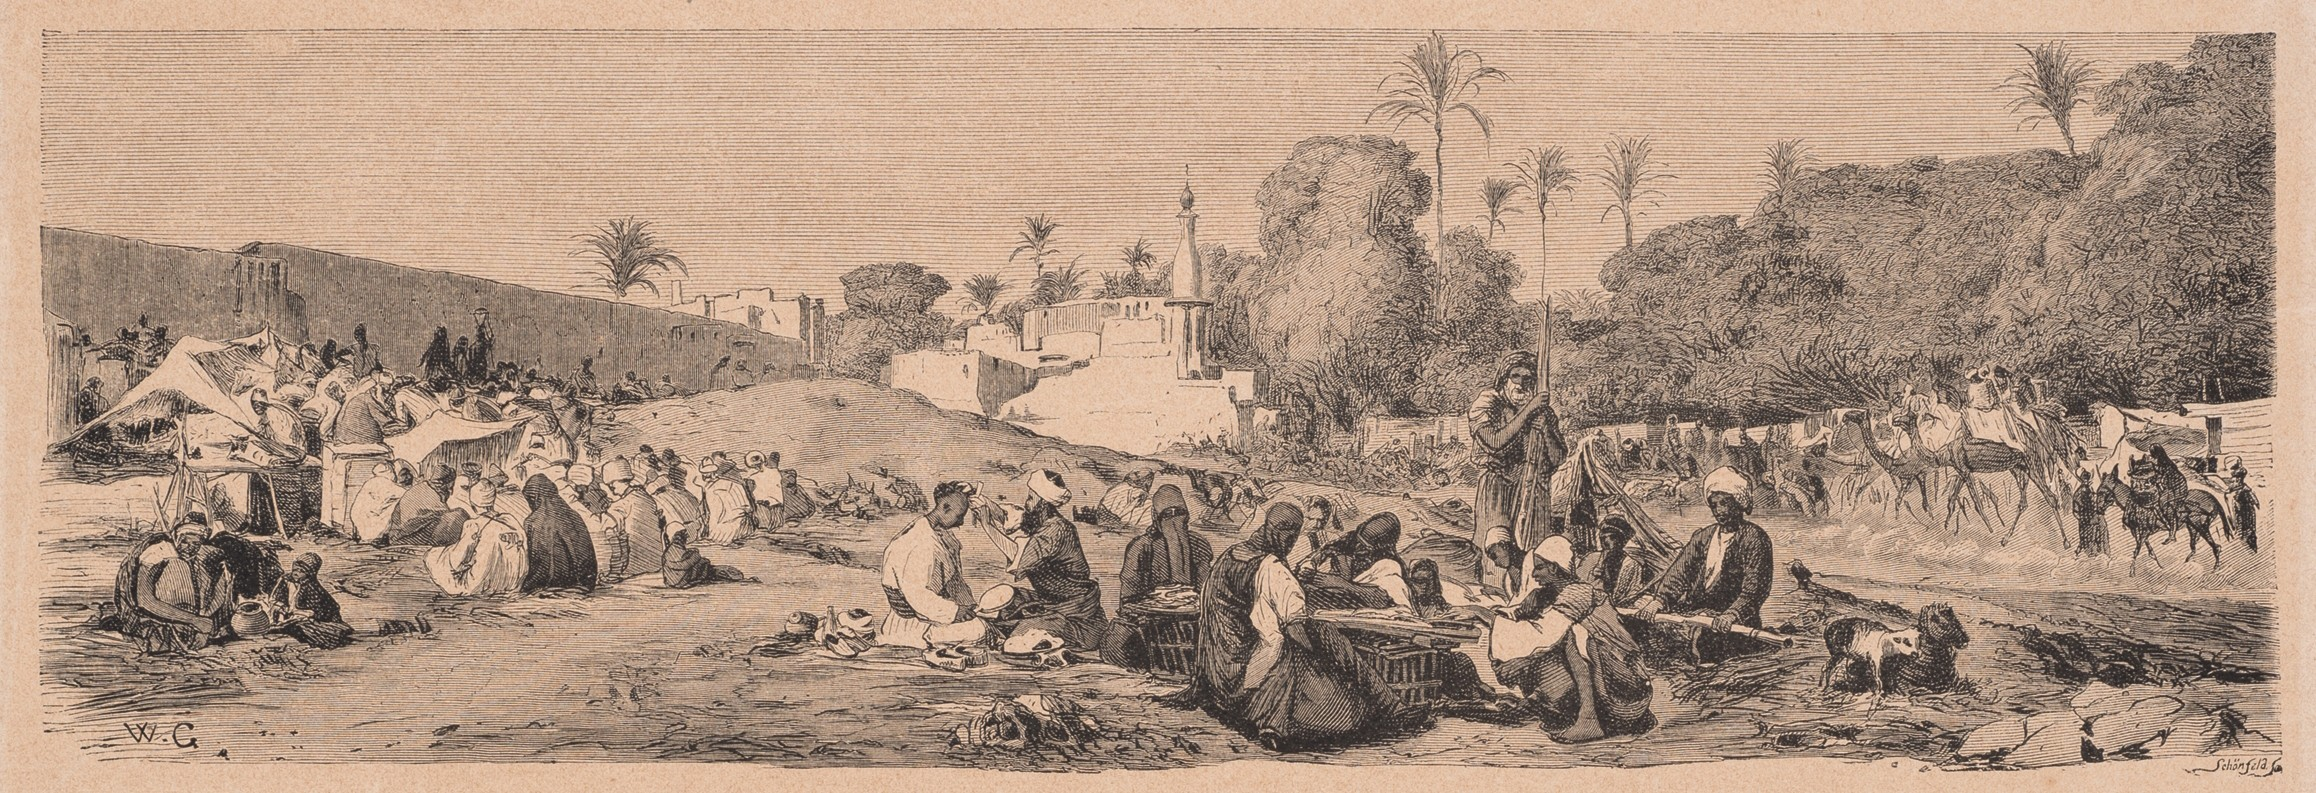 Wilhelm Gentz, Market day in Cairo, German illustrated sheet for young and old, No. 65, From the Orient, 1868 (Museum Neuruppin, CC BY-NC-SA)